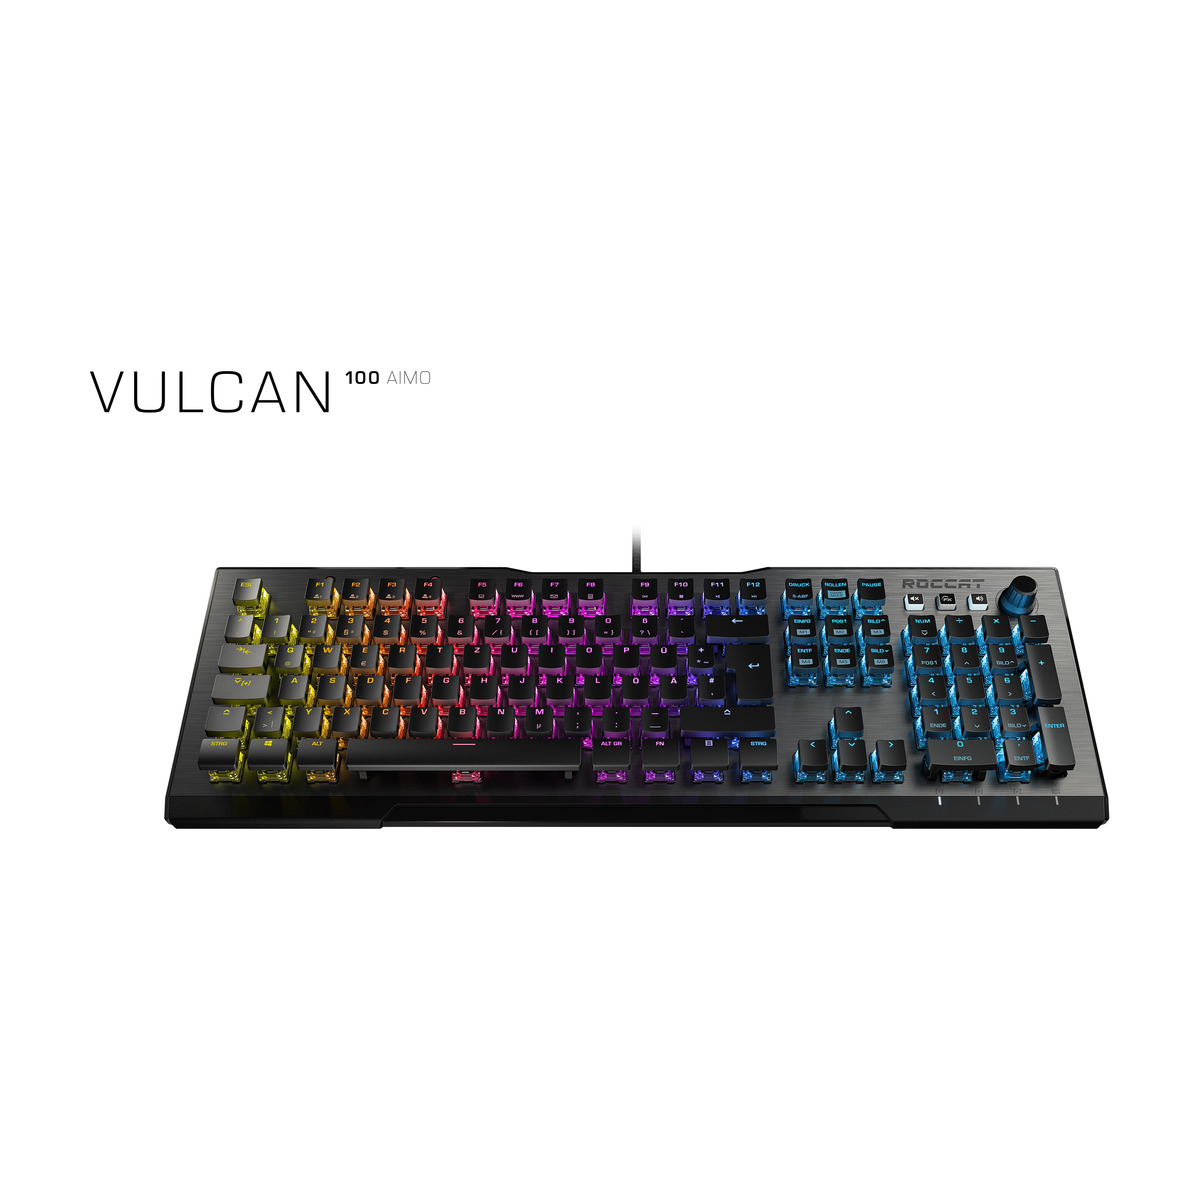 ROCCAT VULCAN 100 AIMO GAMING TASTATUR Power.no